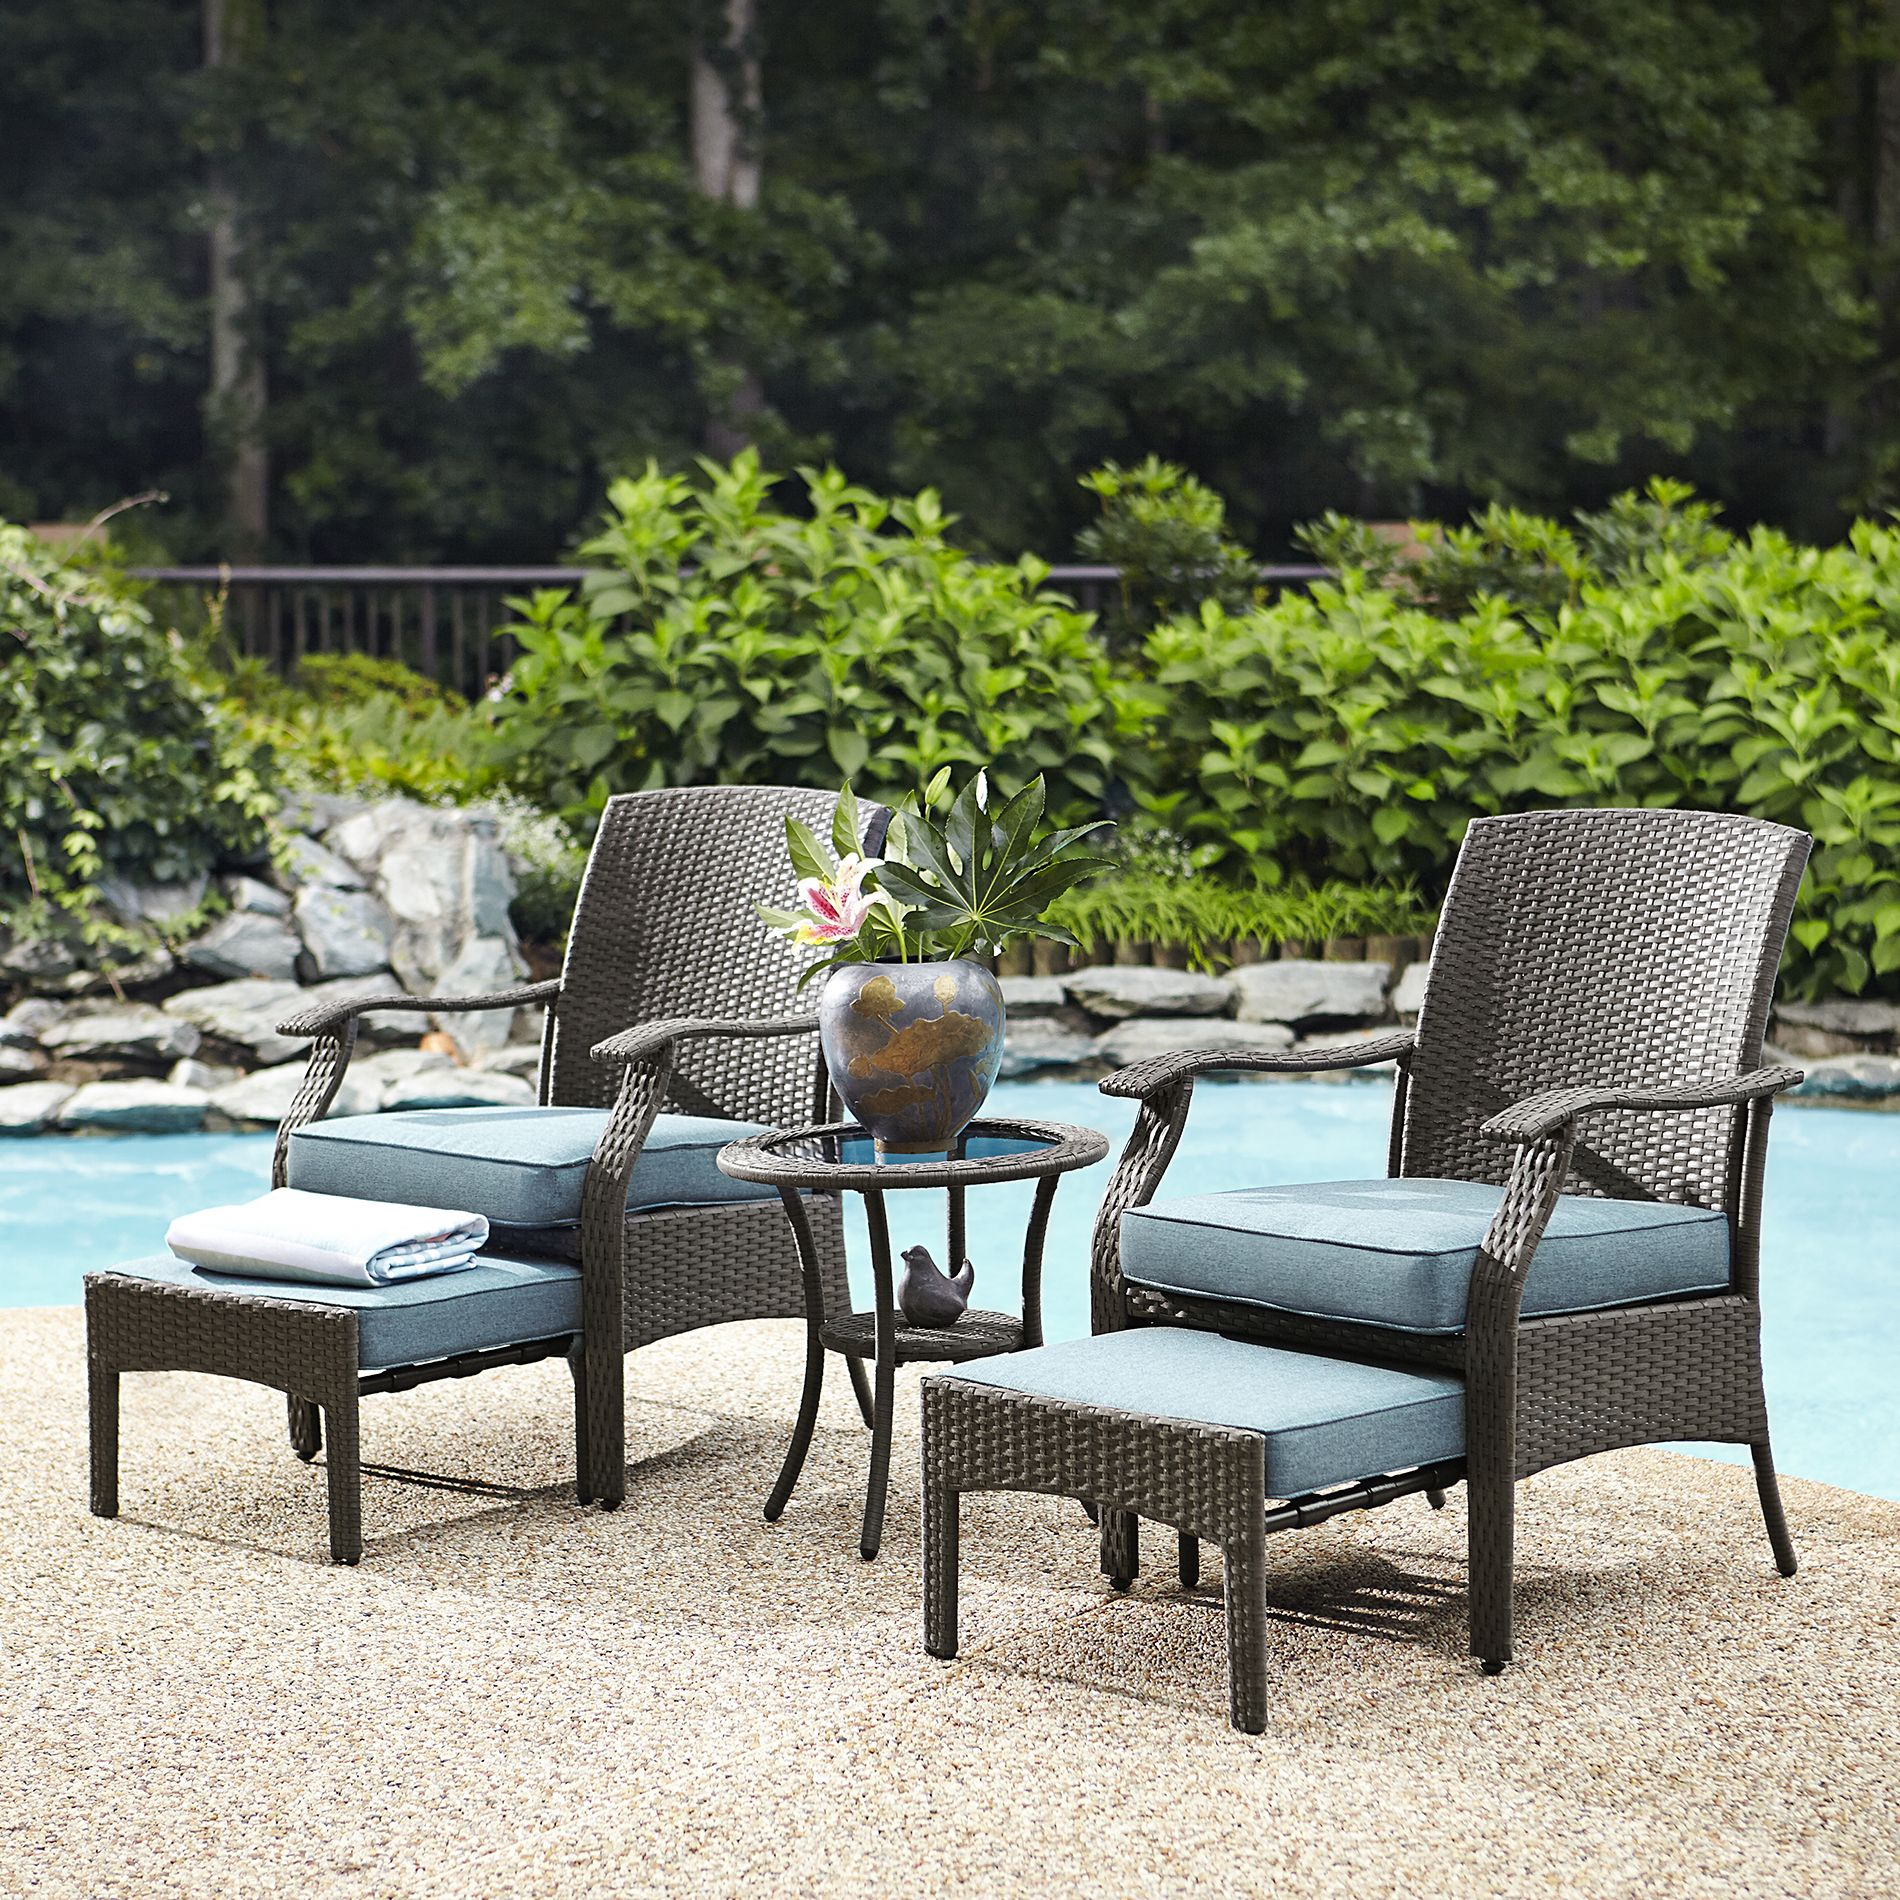 Pin By Krissy Costanzo On Porch Furniture Wicker Patio Furniture